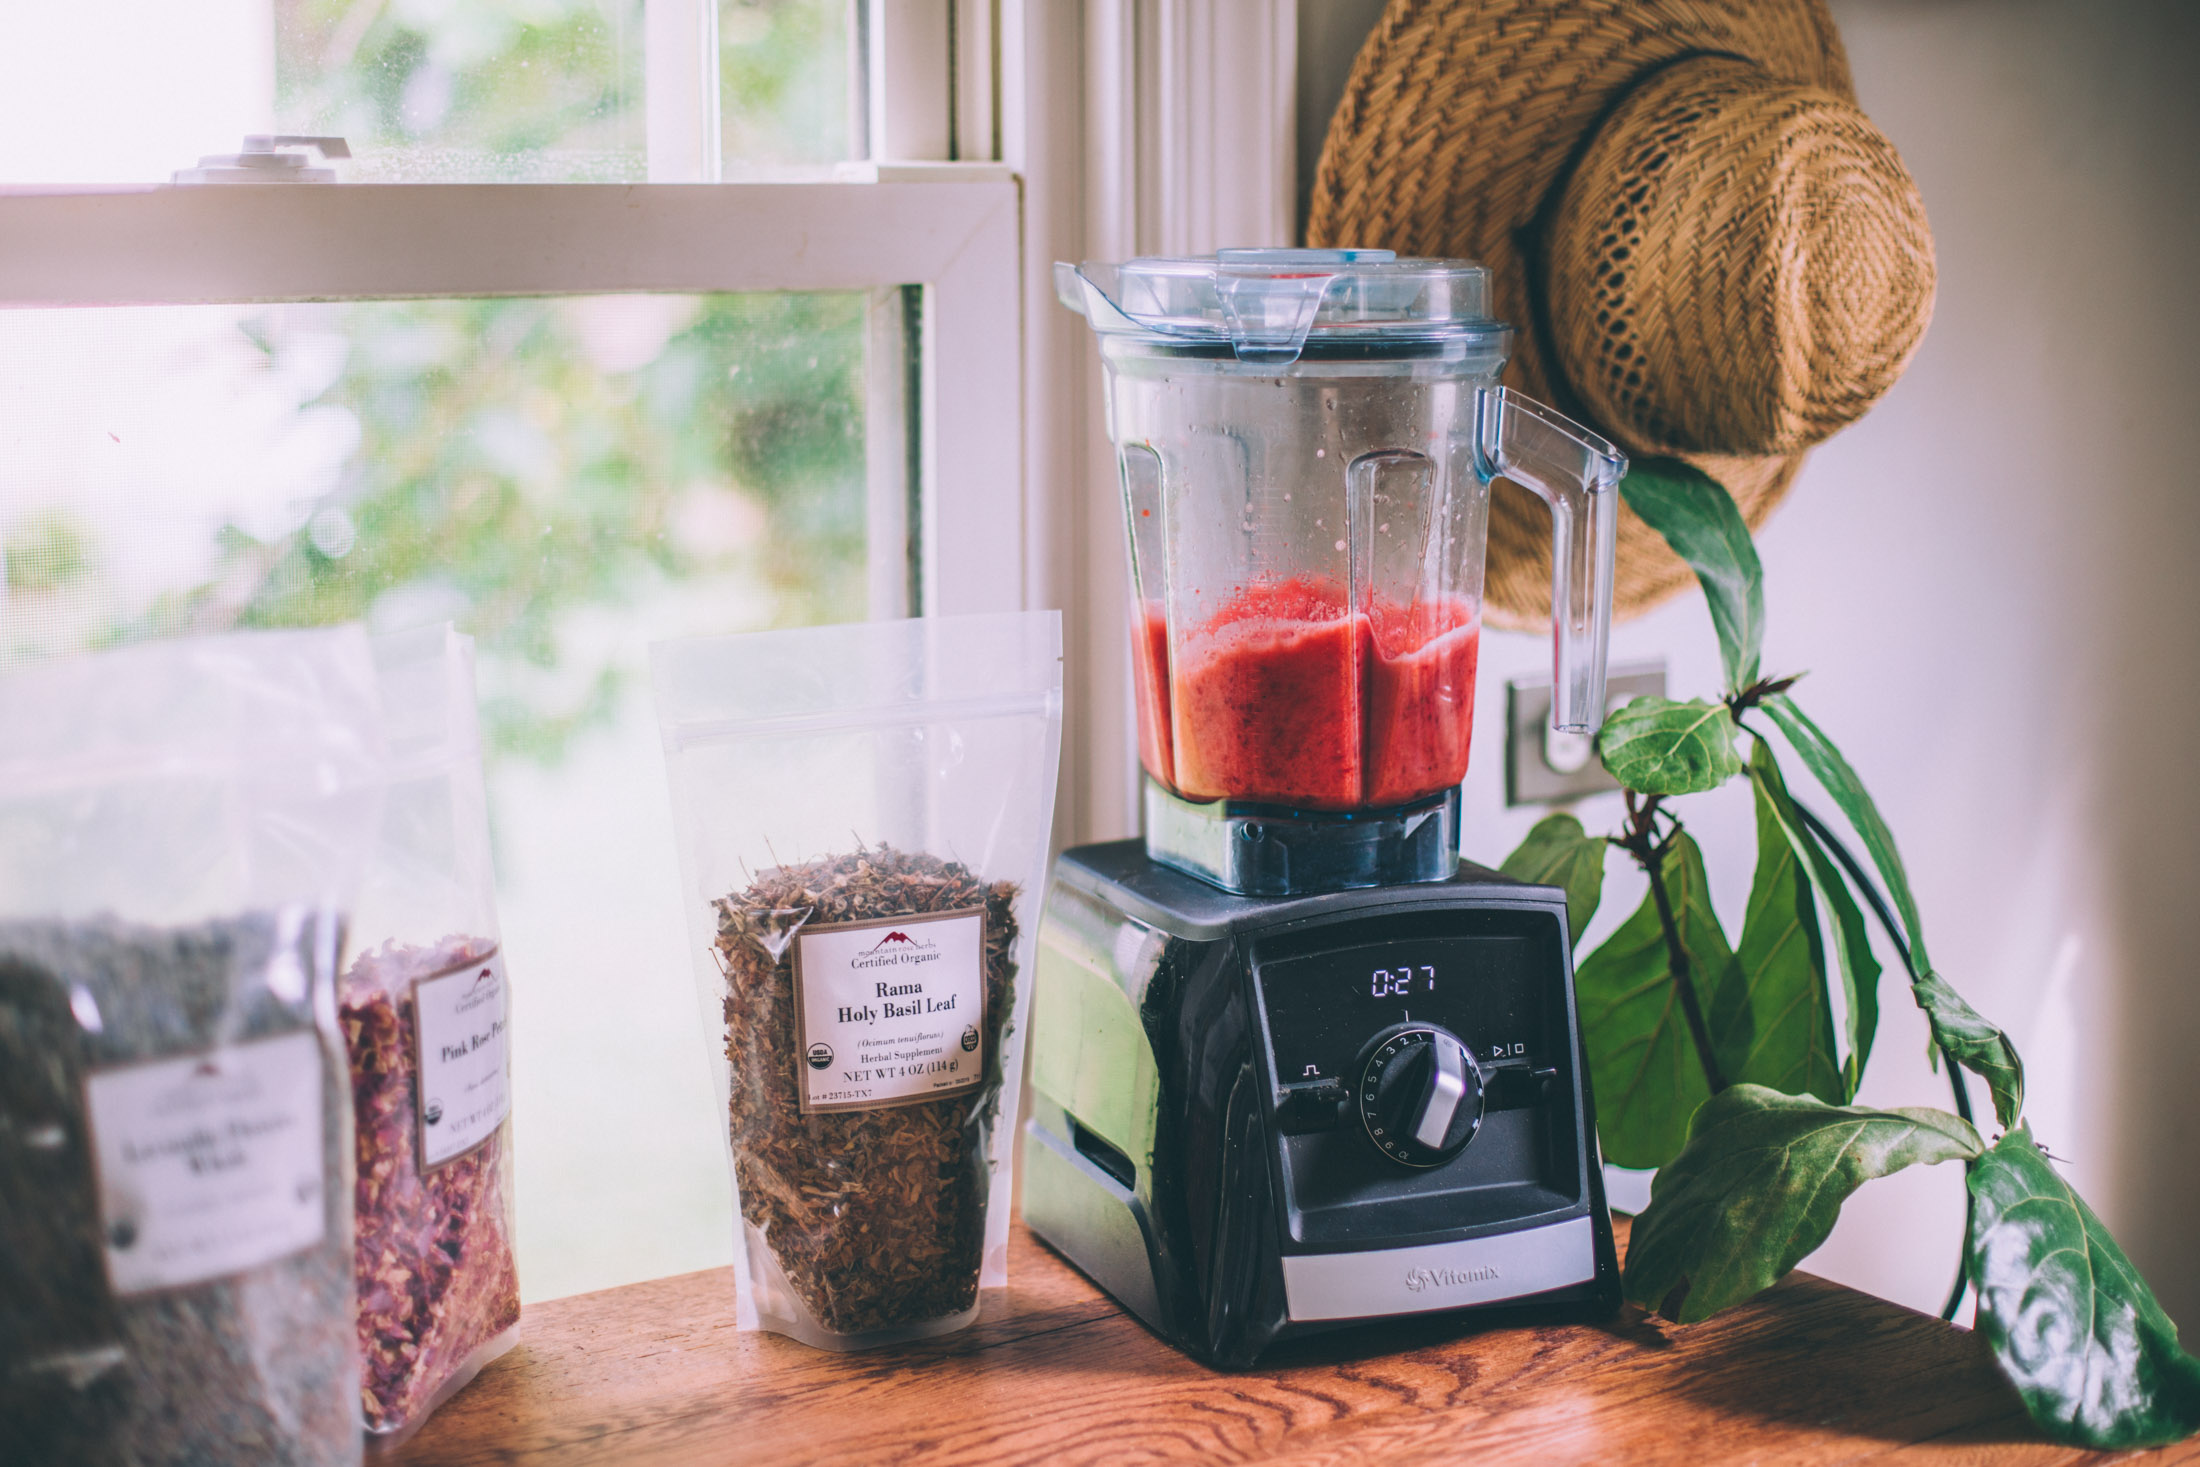 Preparations for making blended agua frescas. A Vitamix blender and bags of dried herbs like holy basil and rose petals.